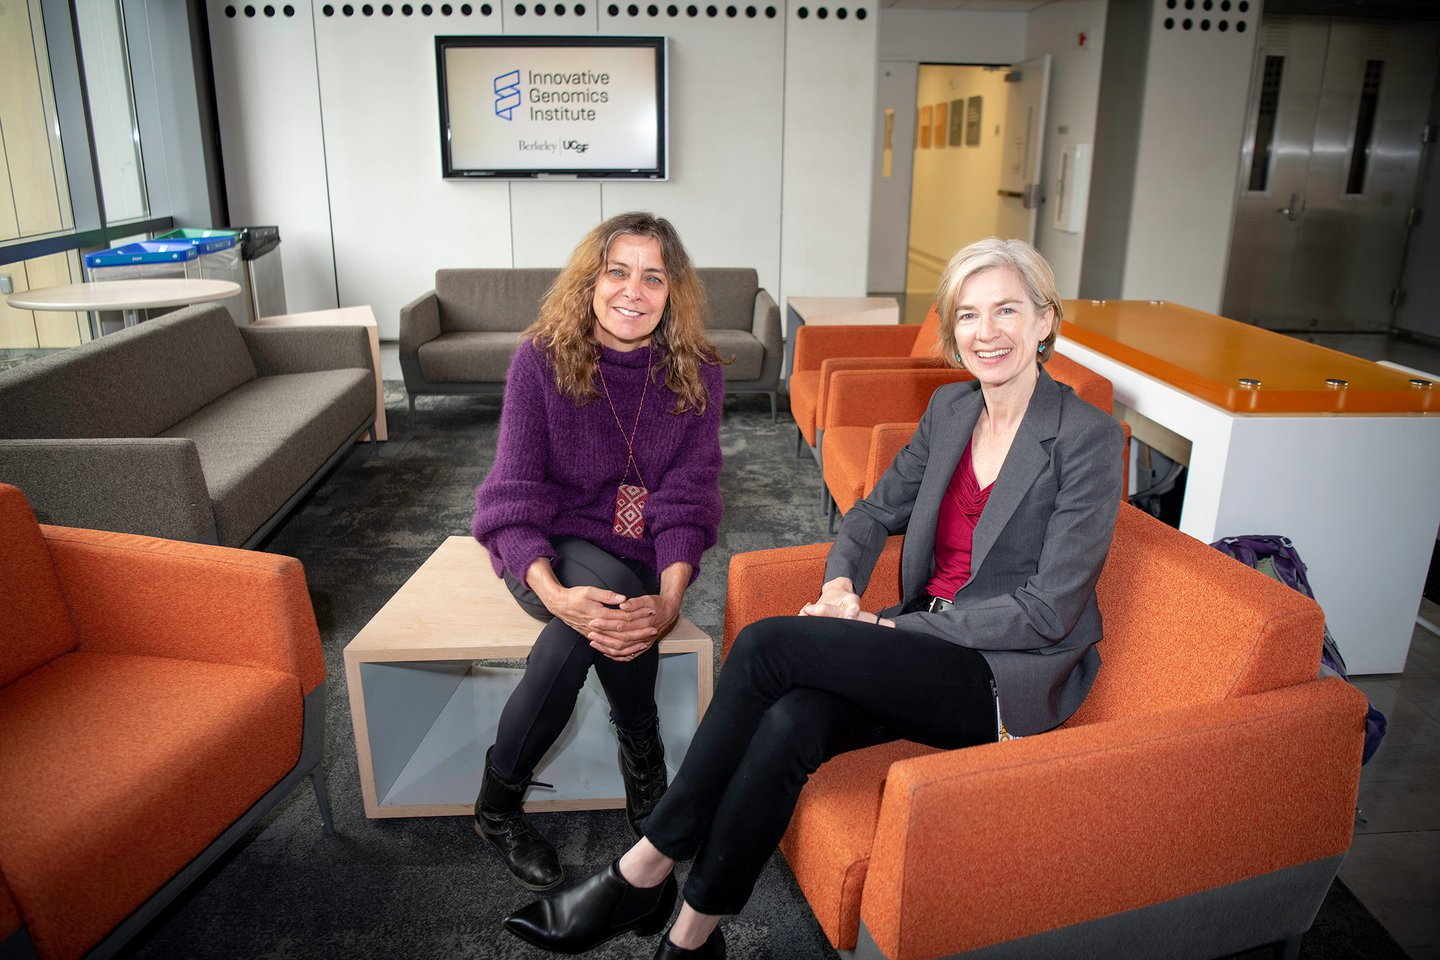 Photo of Jill and Jennifer sitting in the lobby of the Innovative Genomics Institute.